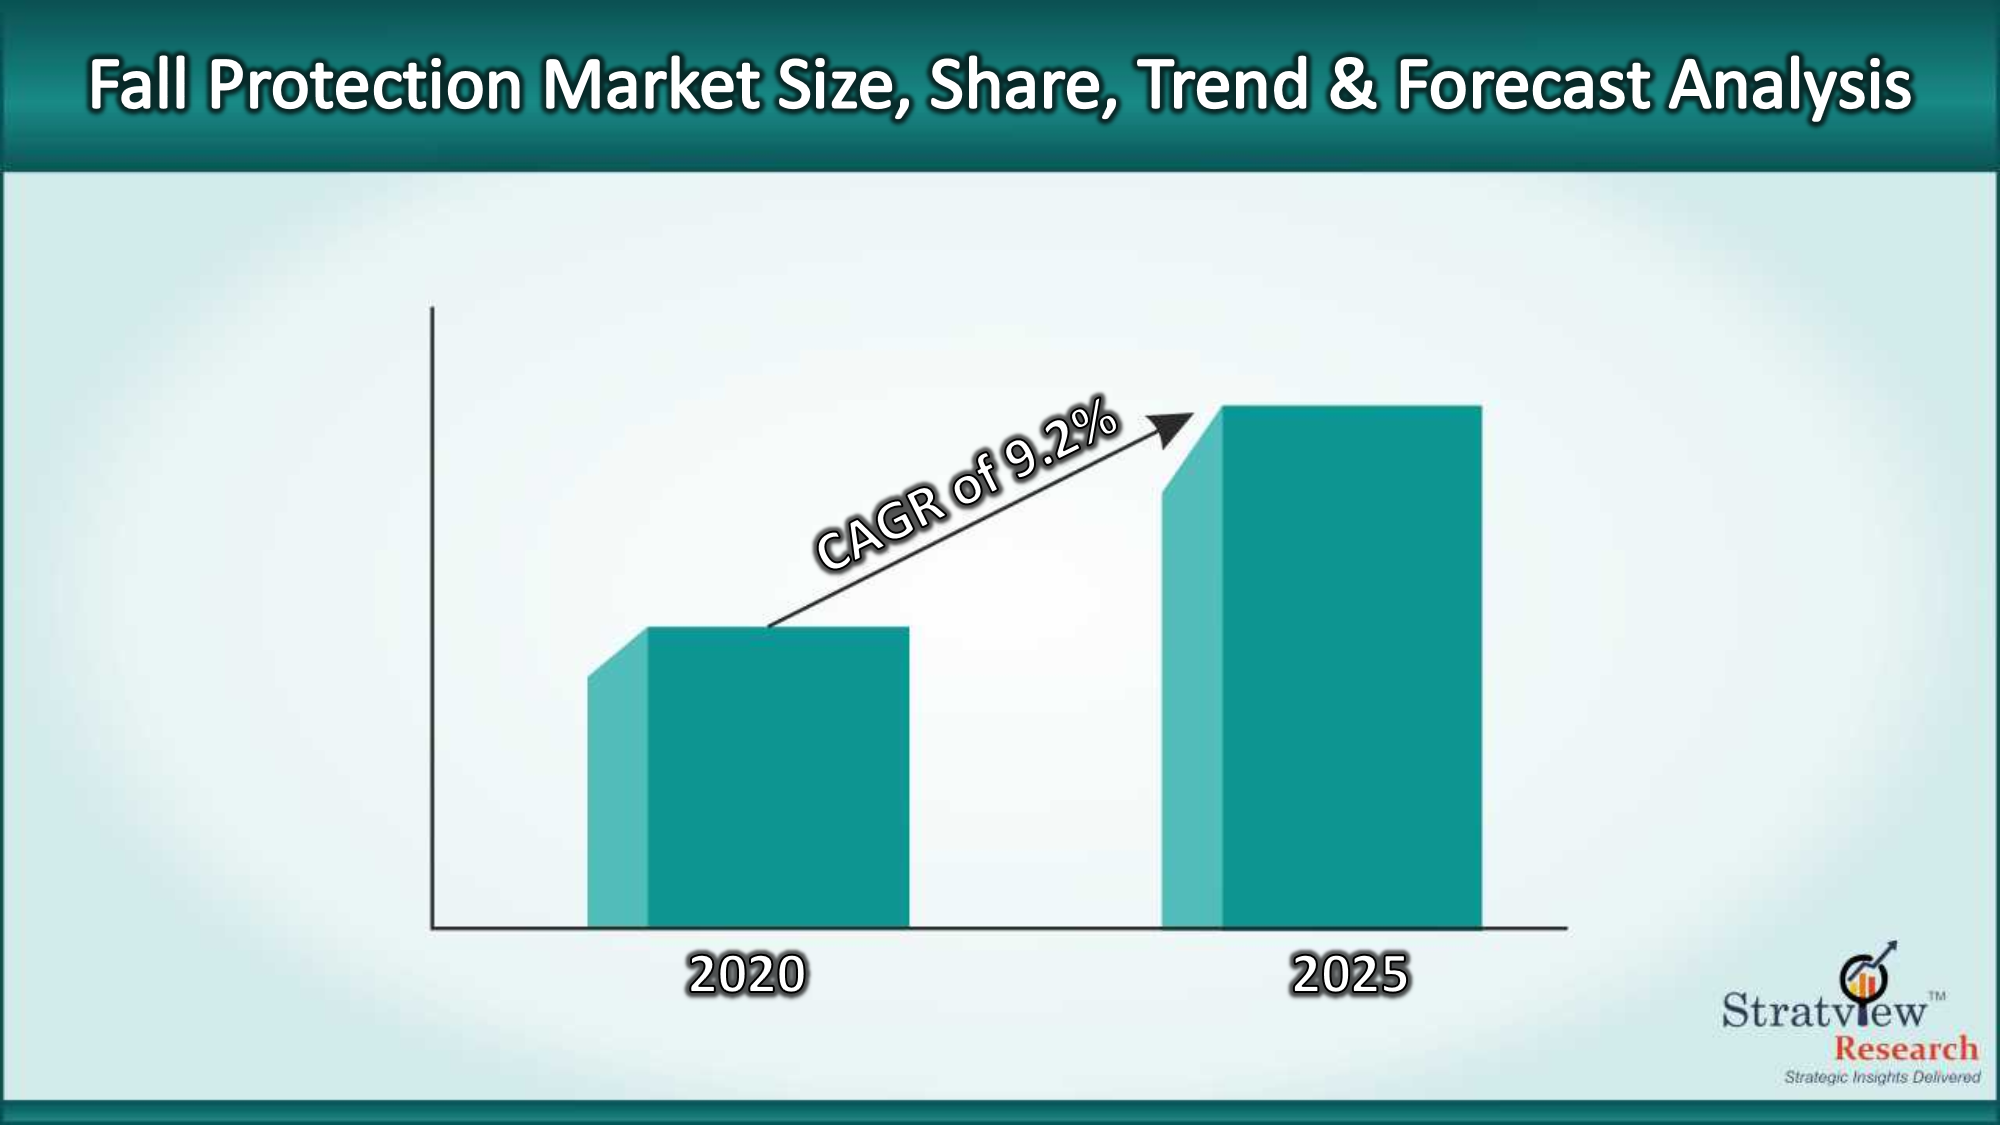 Fall Protection Market to offer profitable growth during 2020-25 with a healthy CAGR of 9.2%